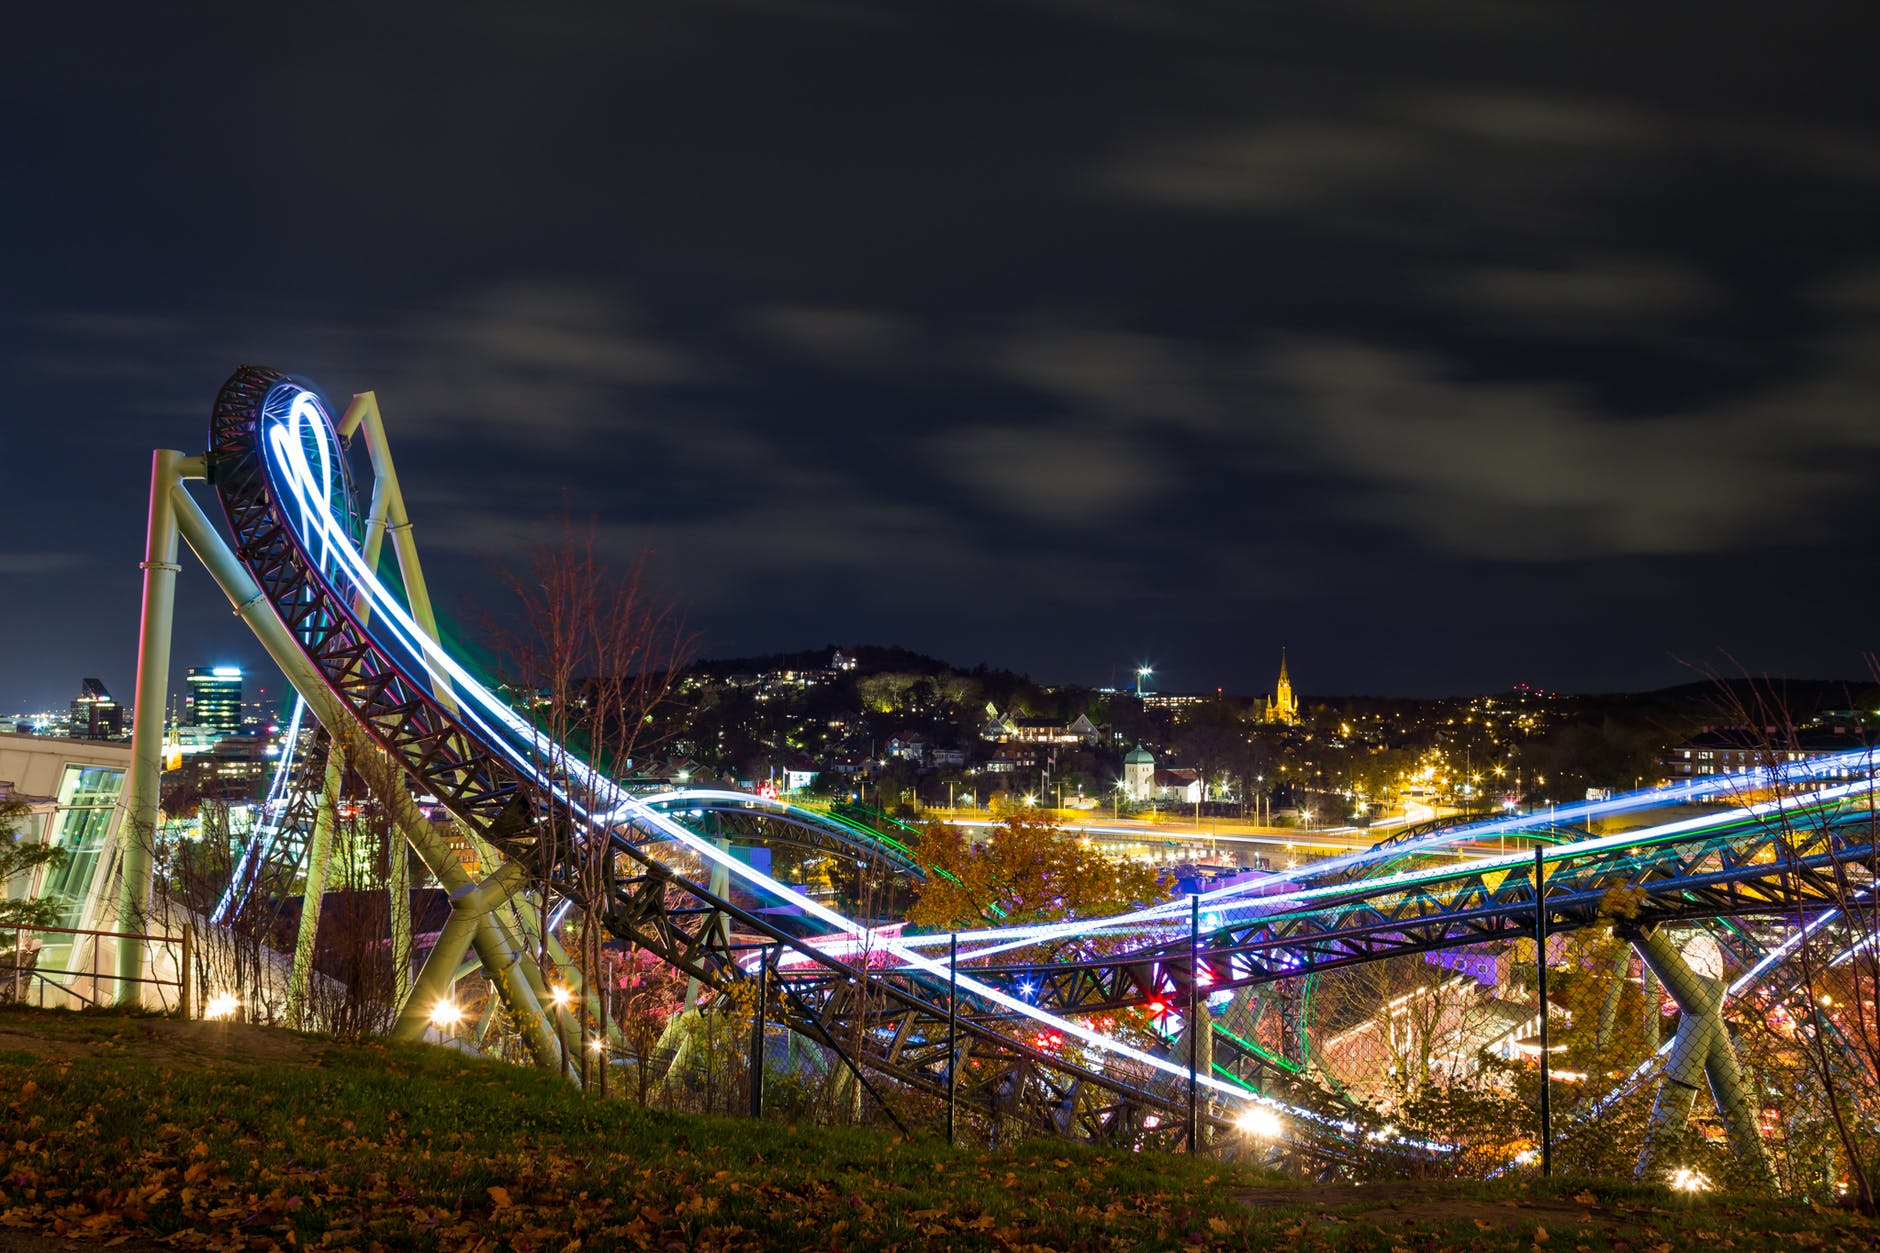 time lapse photography of roller coaster during night time